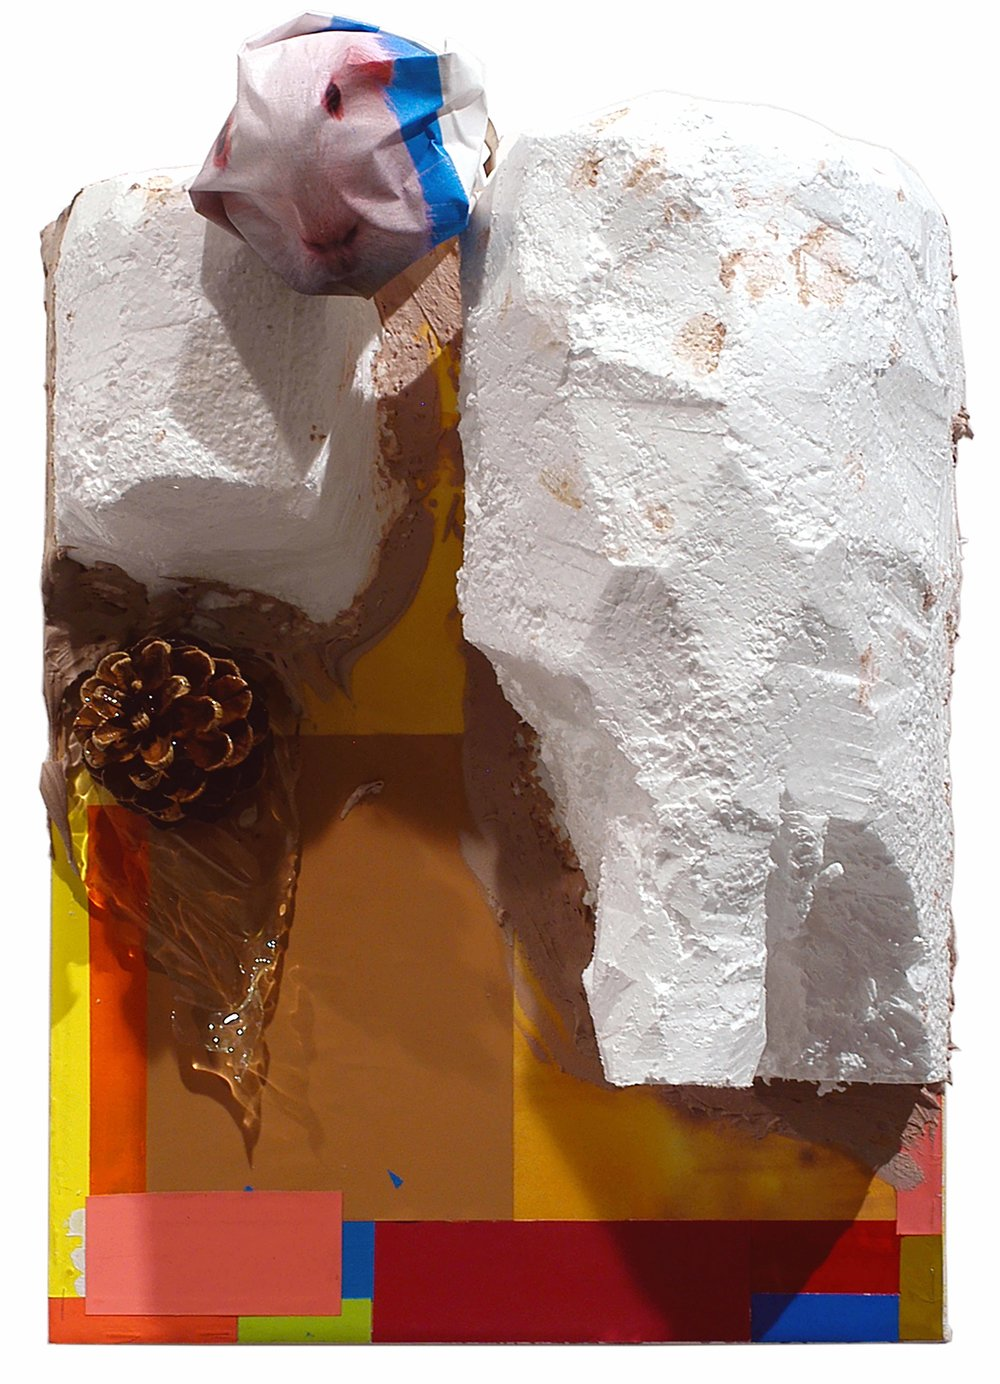 Drew Beattie  Hole in My Island   2005 acrylic, collage on light bulb, styrofoam, bondo, pine cone, resin and colored paper on canvas 14½ x 11¼ inches